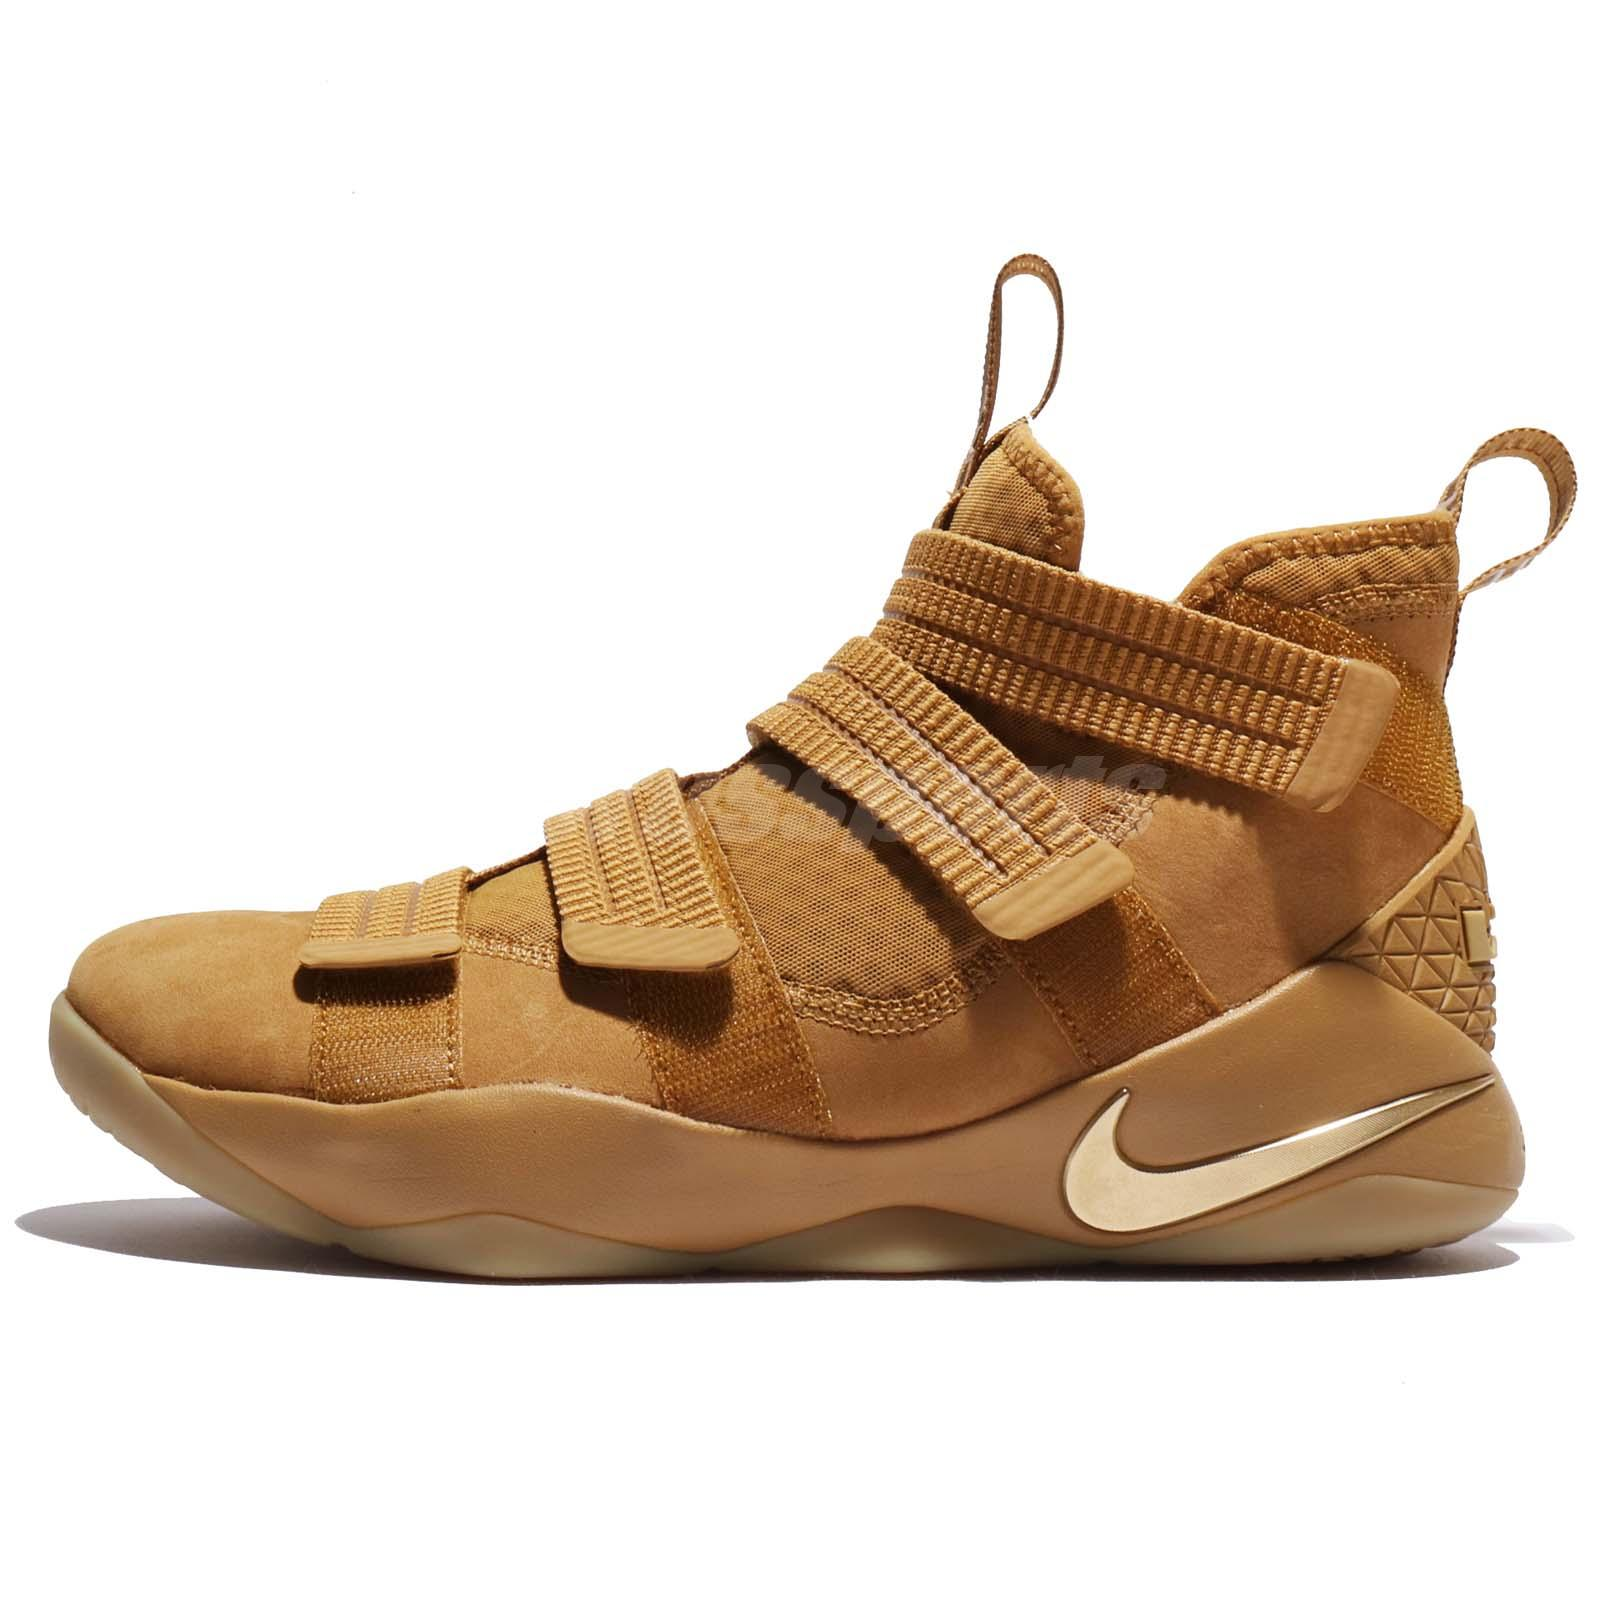 df166dcdf544c ... real nike lebron soldier xi sfg ep 11 james wheat gold men basketball  897647 700 51a97 ...